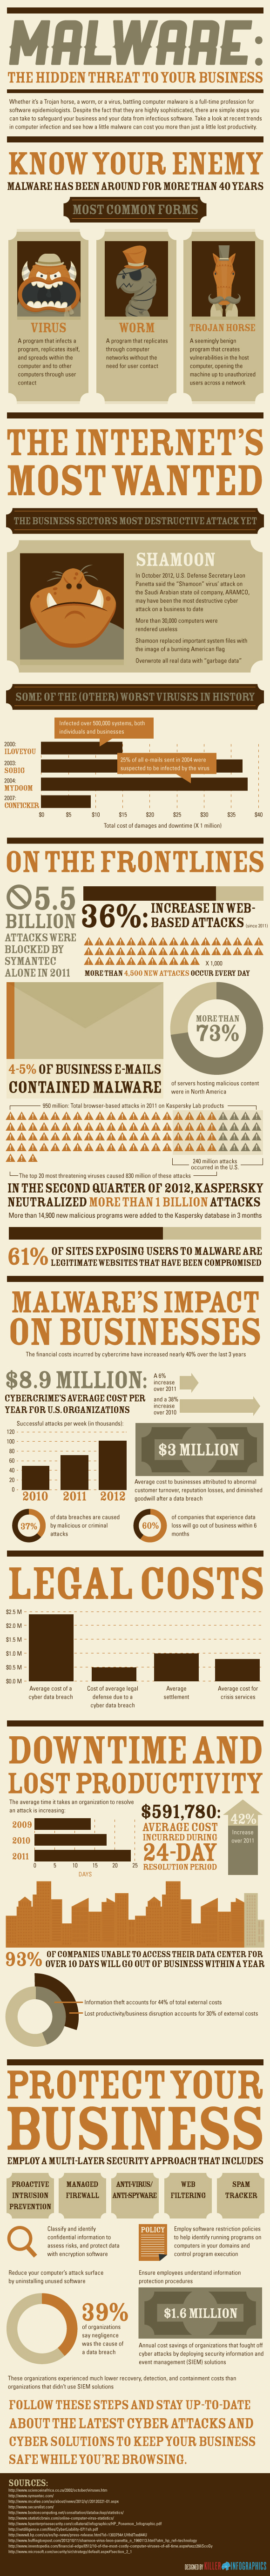 Malware - The Hidden Threat to Your Business